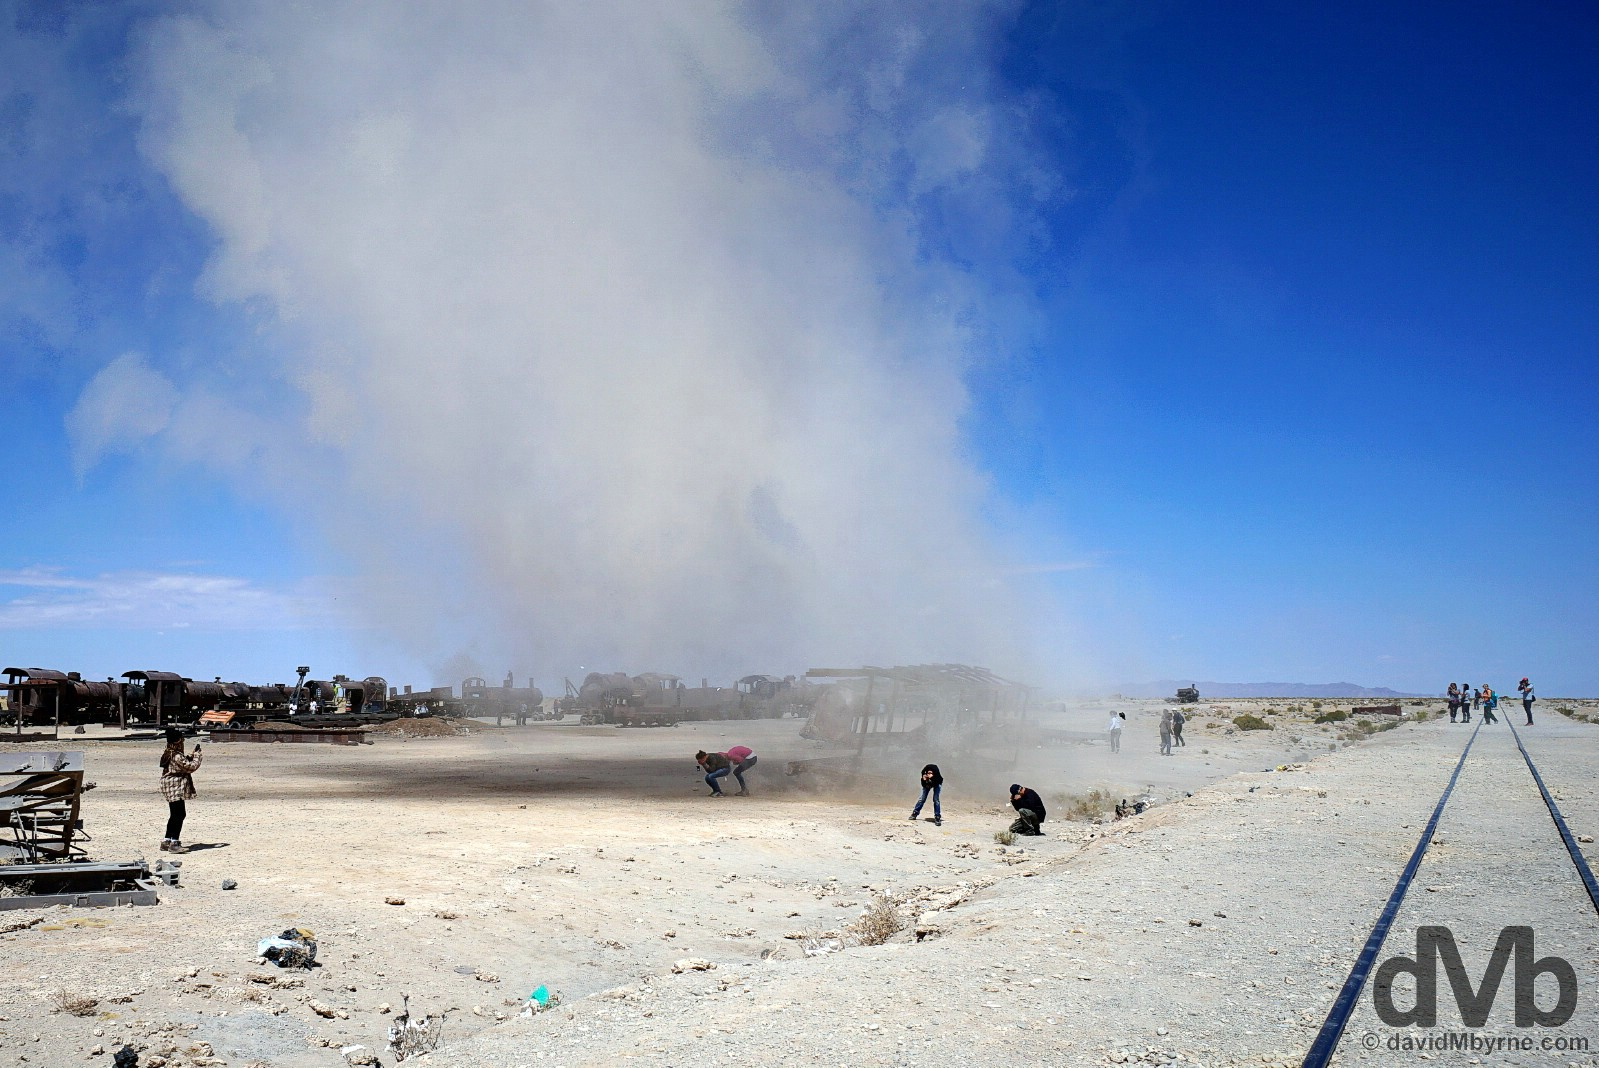 A sand twister at the Train Cemetery on the outskirts of Uyuni, southern Bolivia. September 3, 2015.